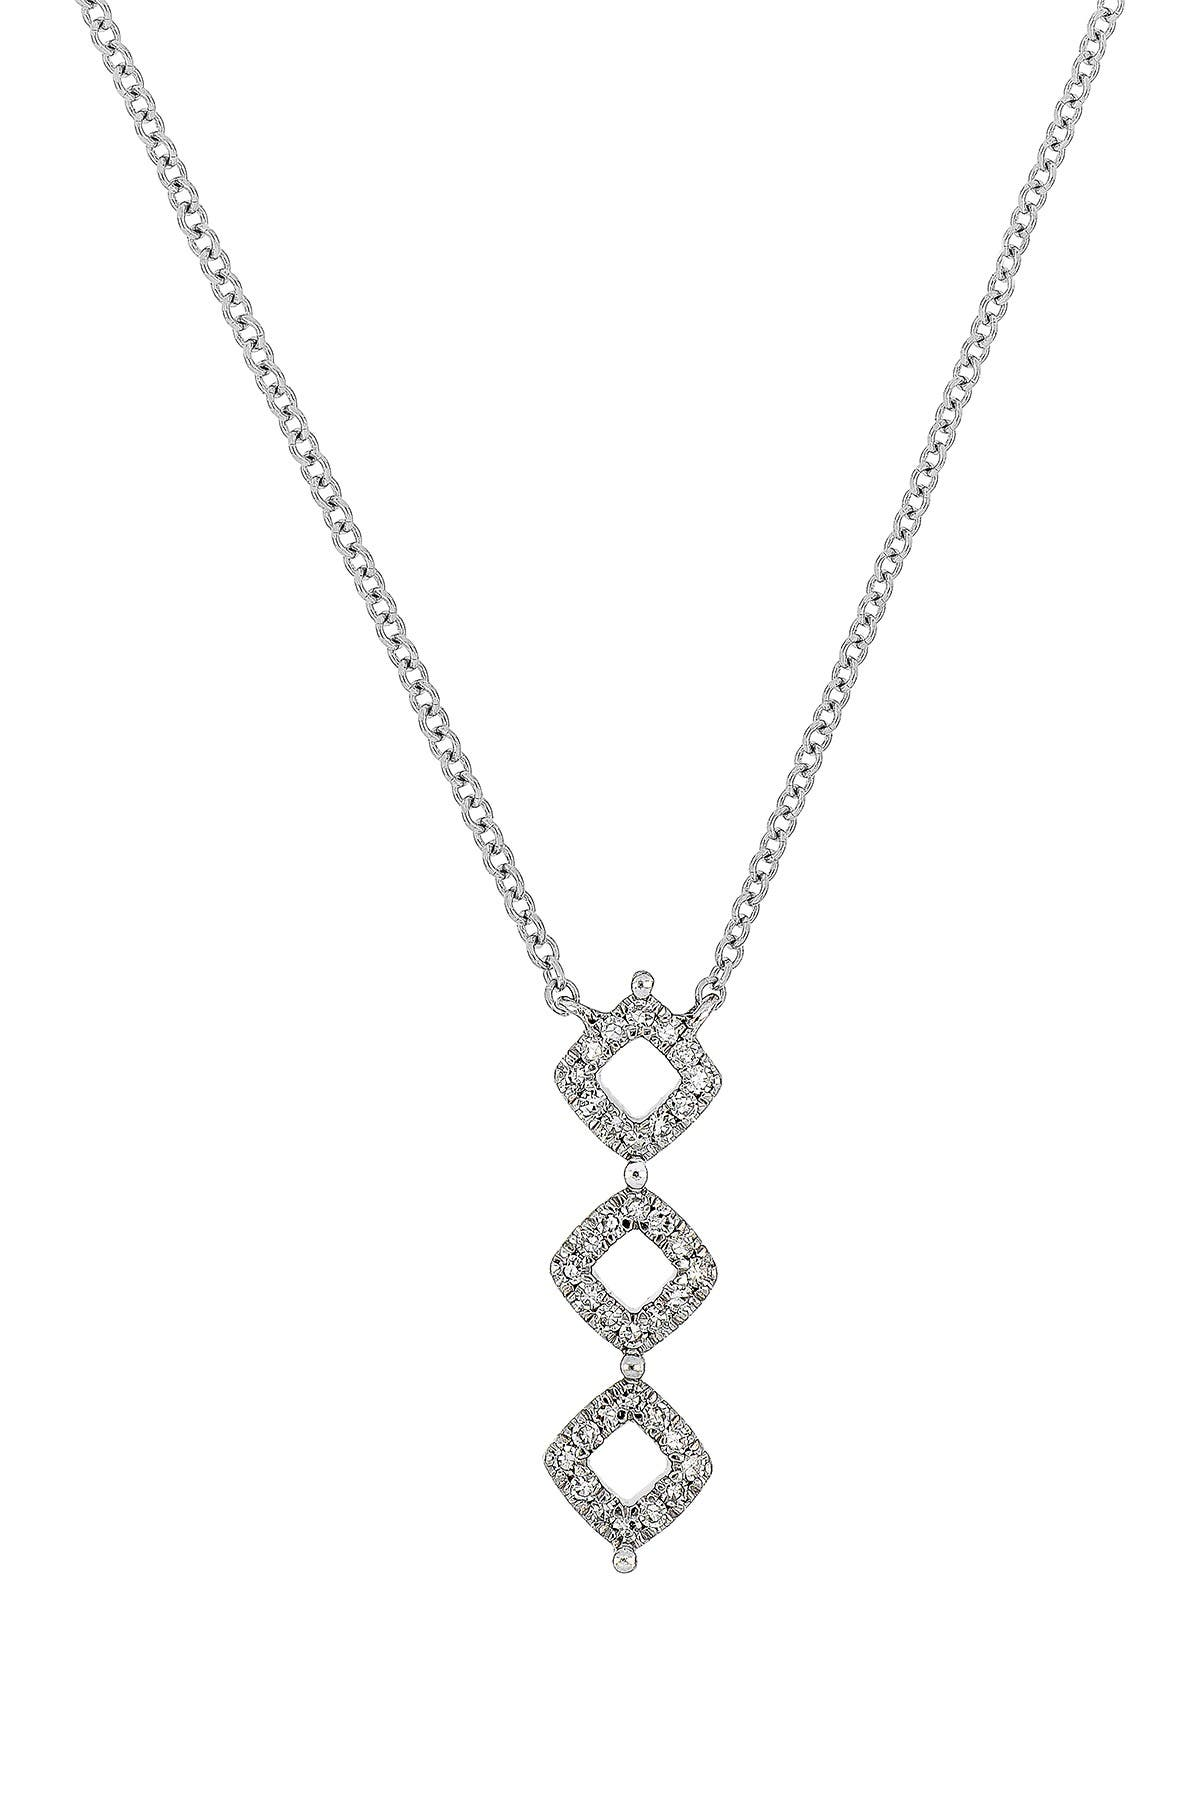 Image of Carriere Sterling Silver Pave Diamond Linear Pendant Necklace - 0.36 ctw